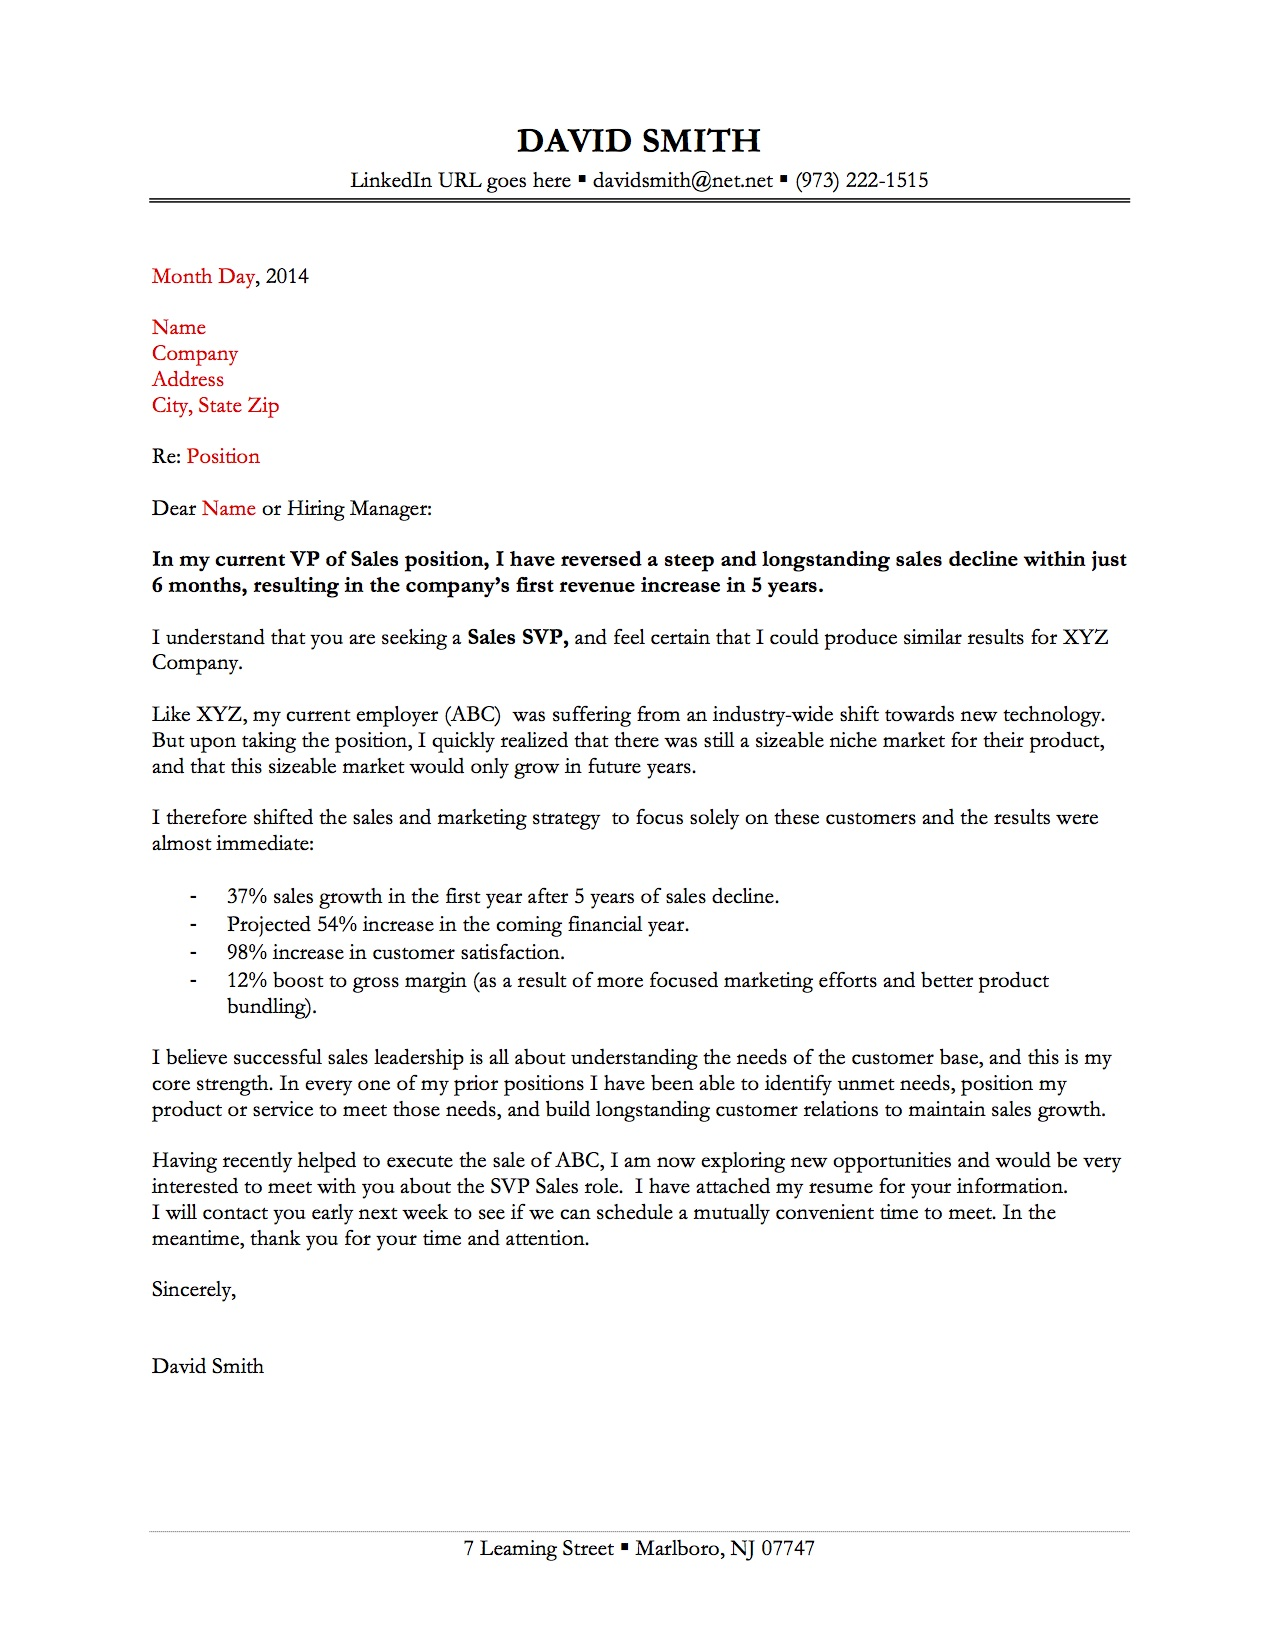 sample cover letter 2 - Cover Letter To Company